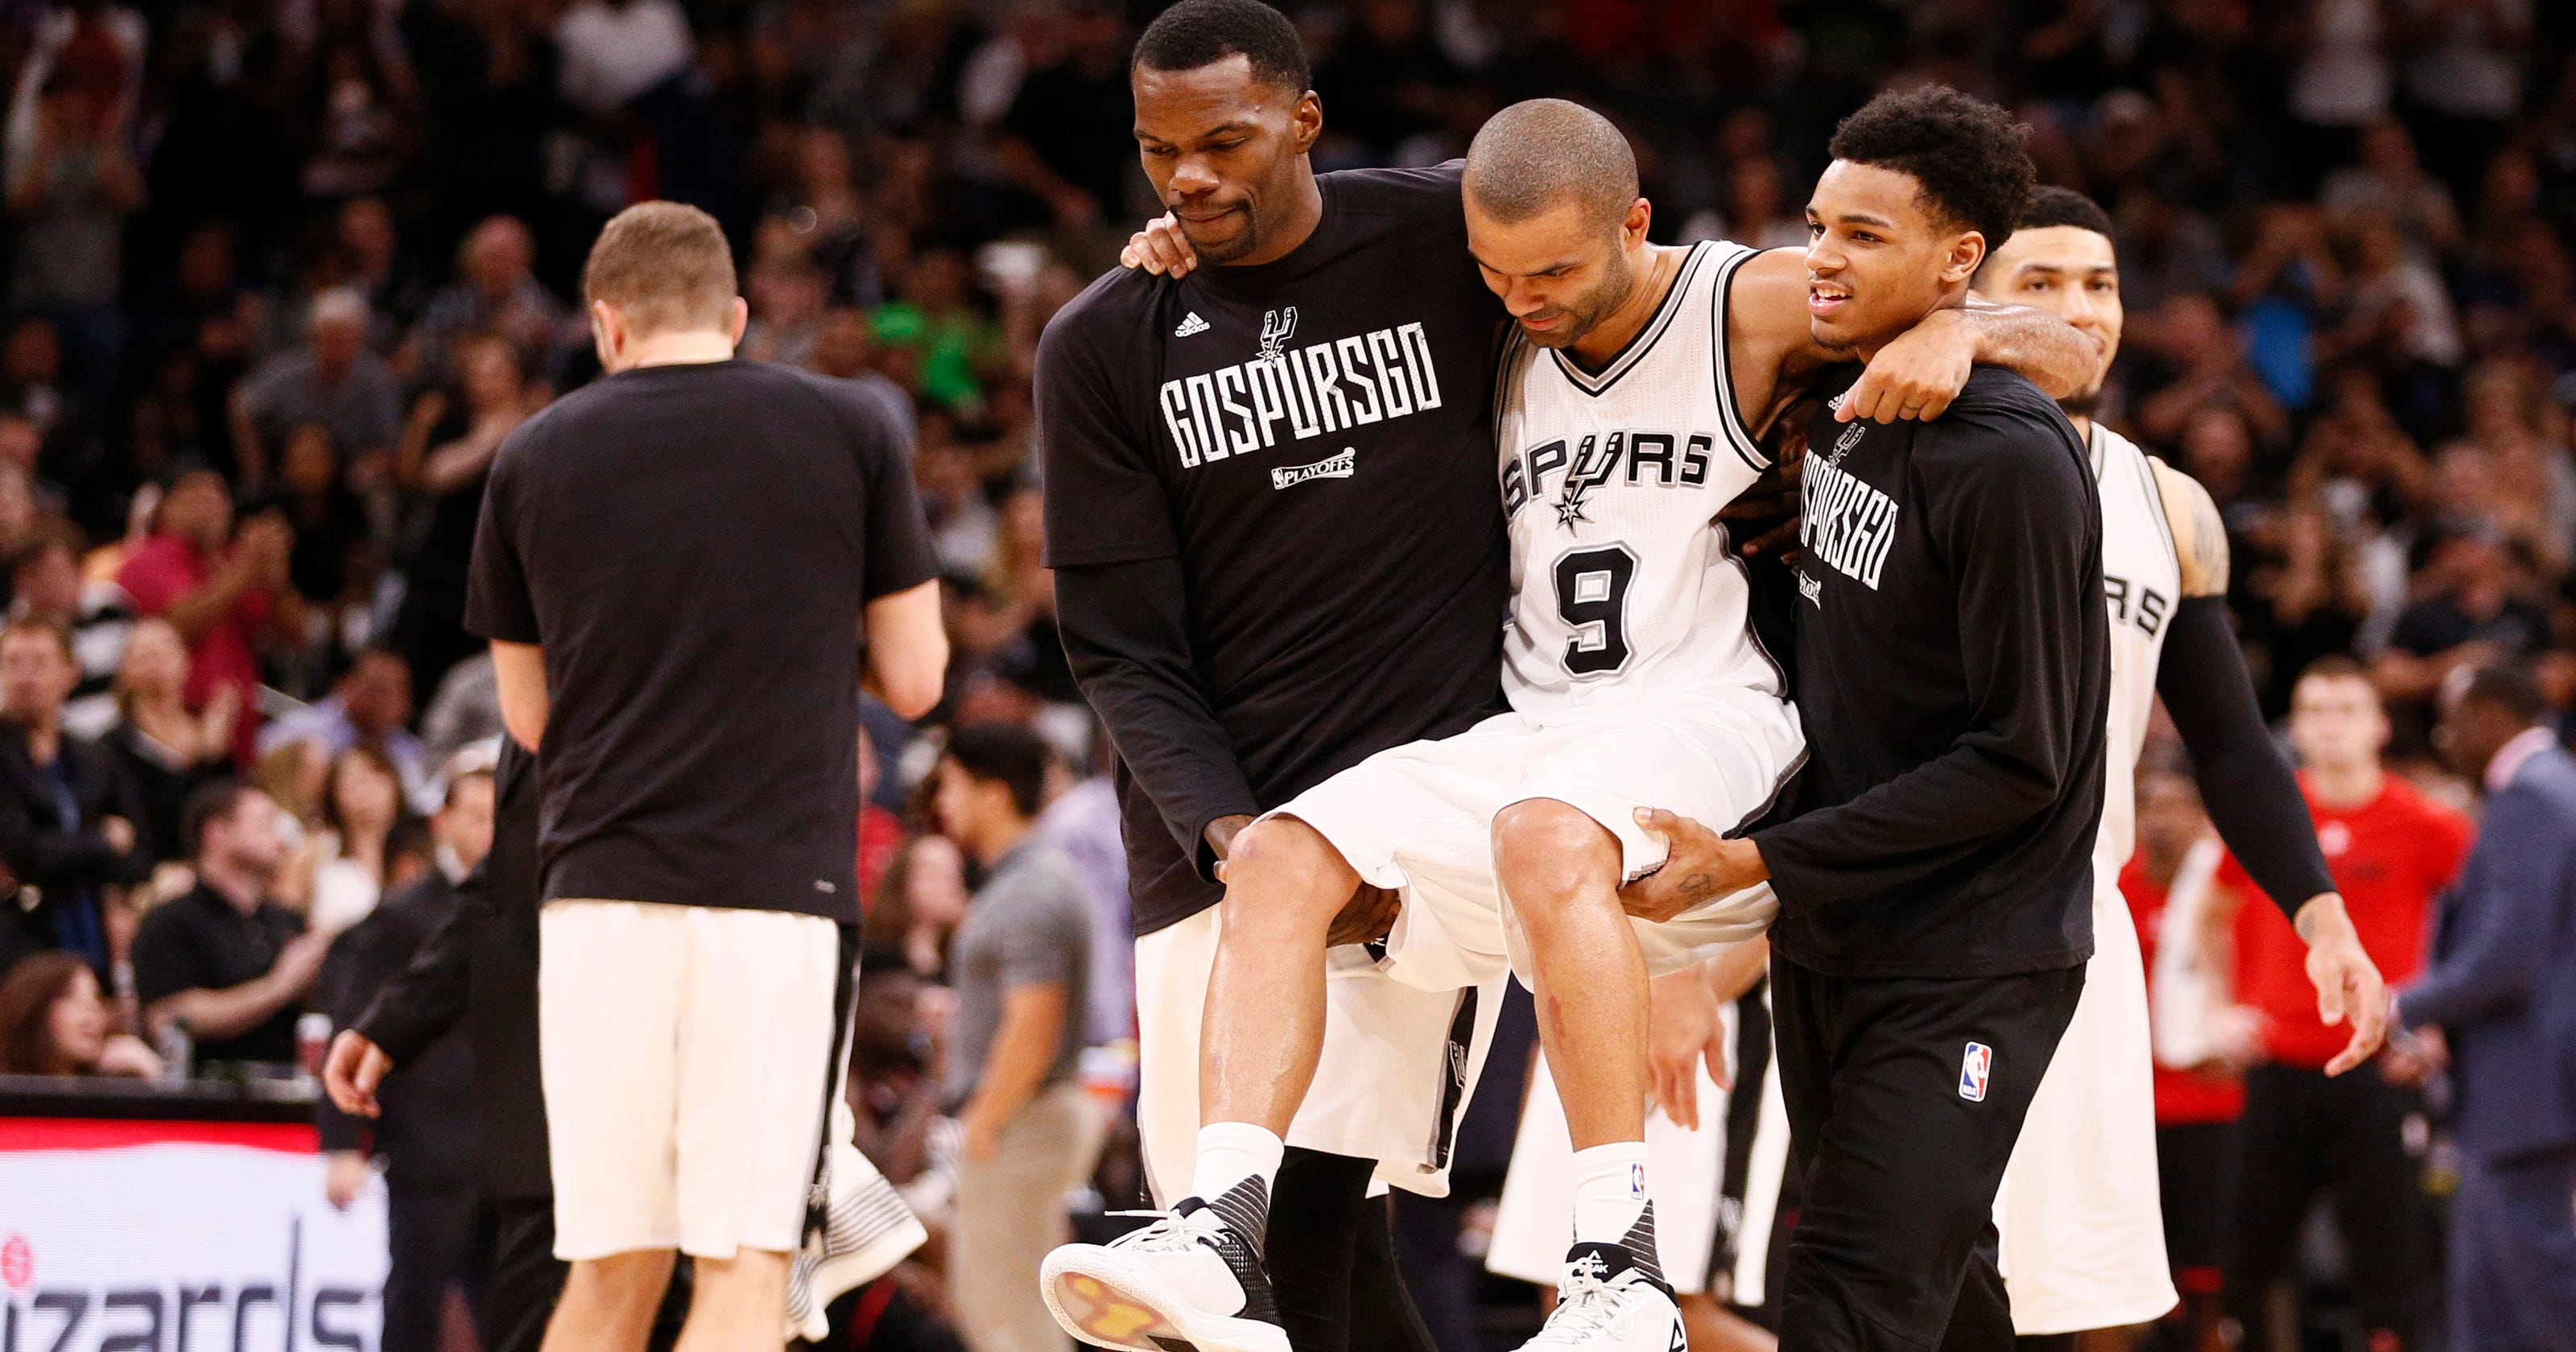 d2eea3472 Spurs PG Tony Parker carried off court after left leg injury